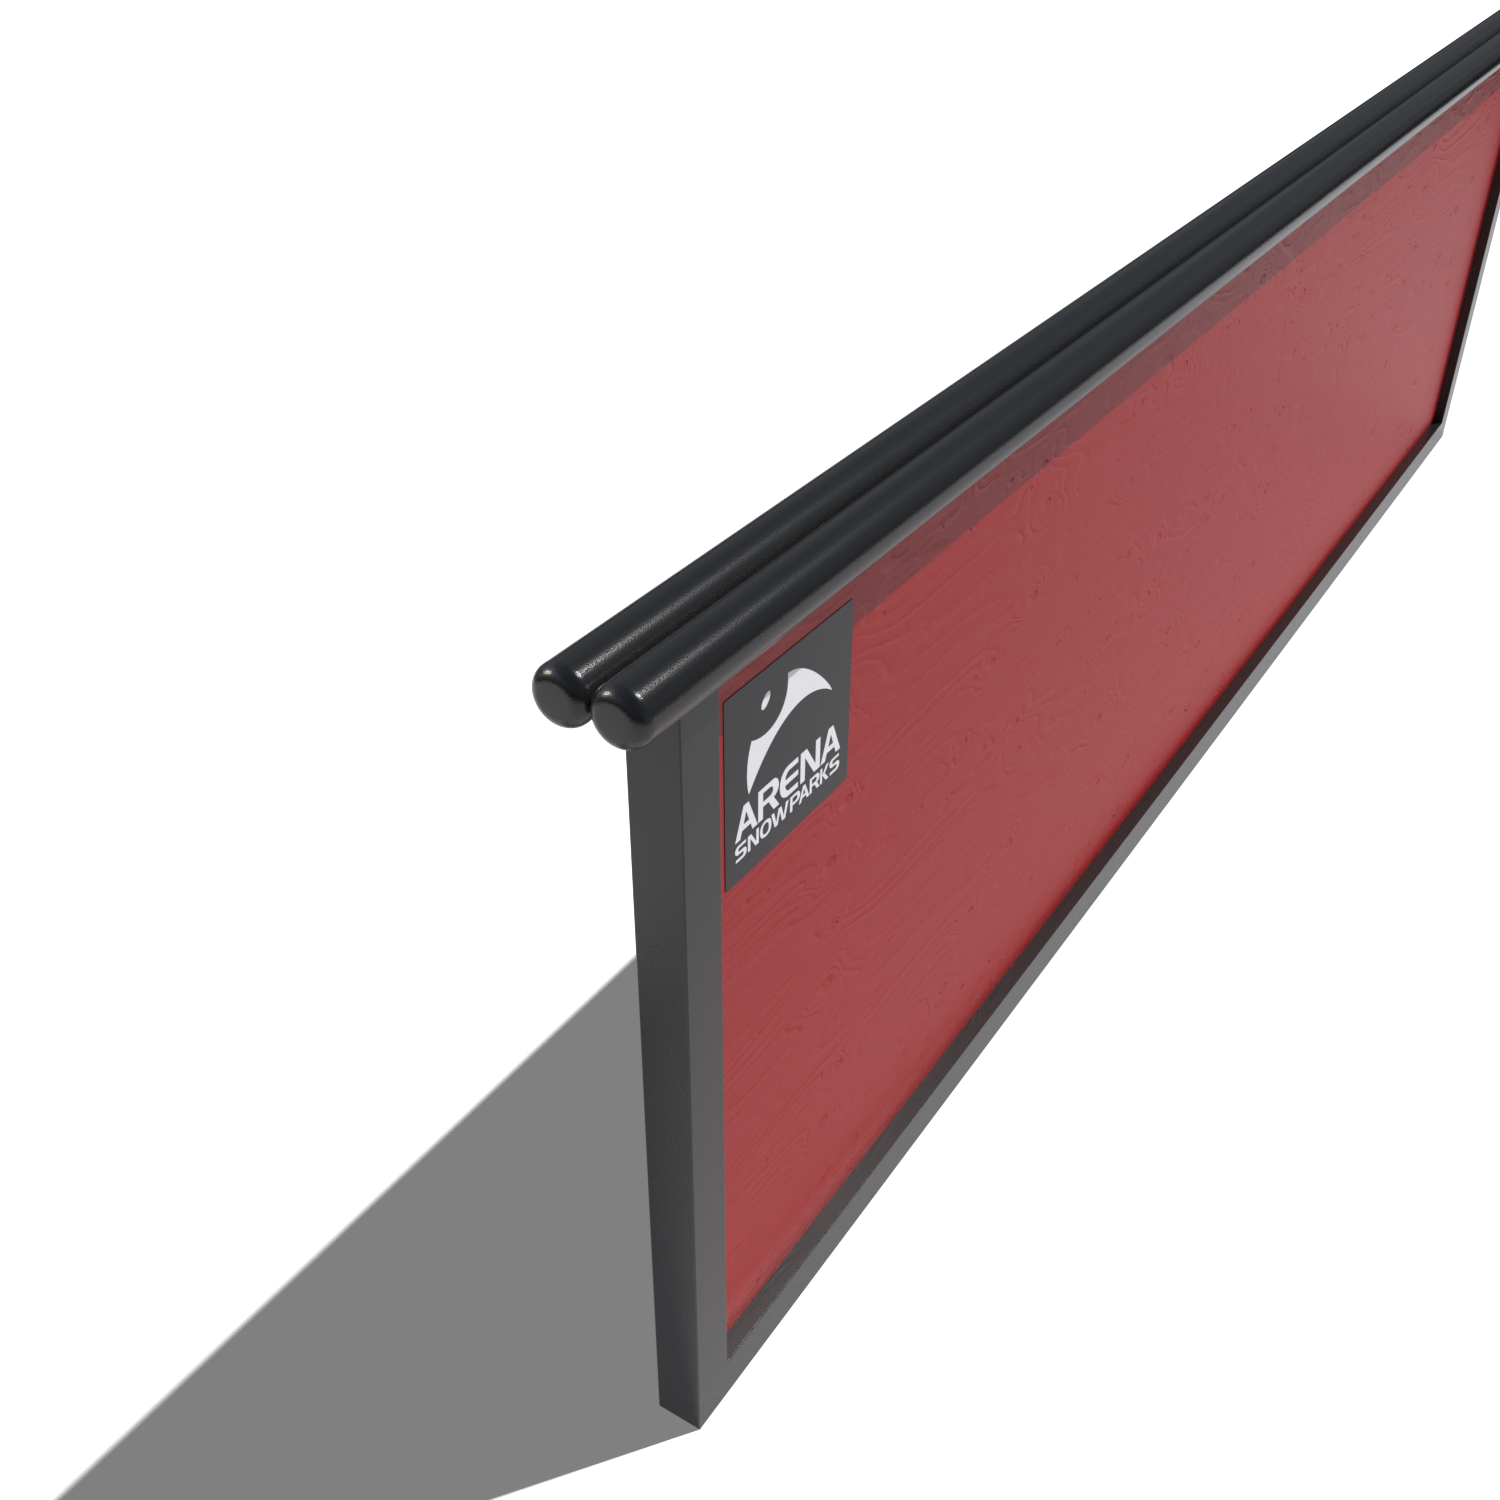 ASP - Sliding Surfaces 05 - Shotgun.png